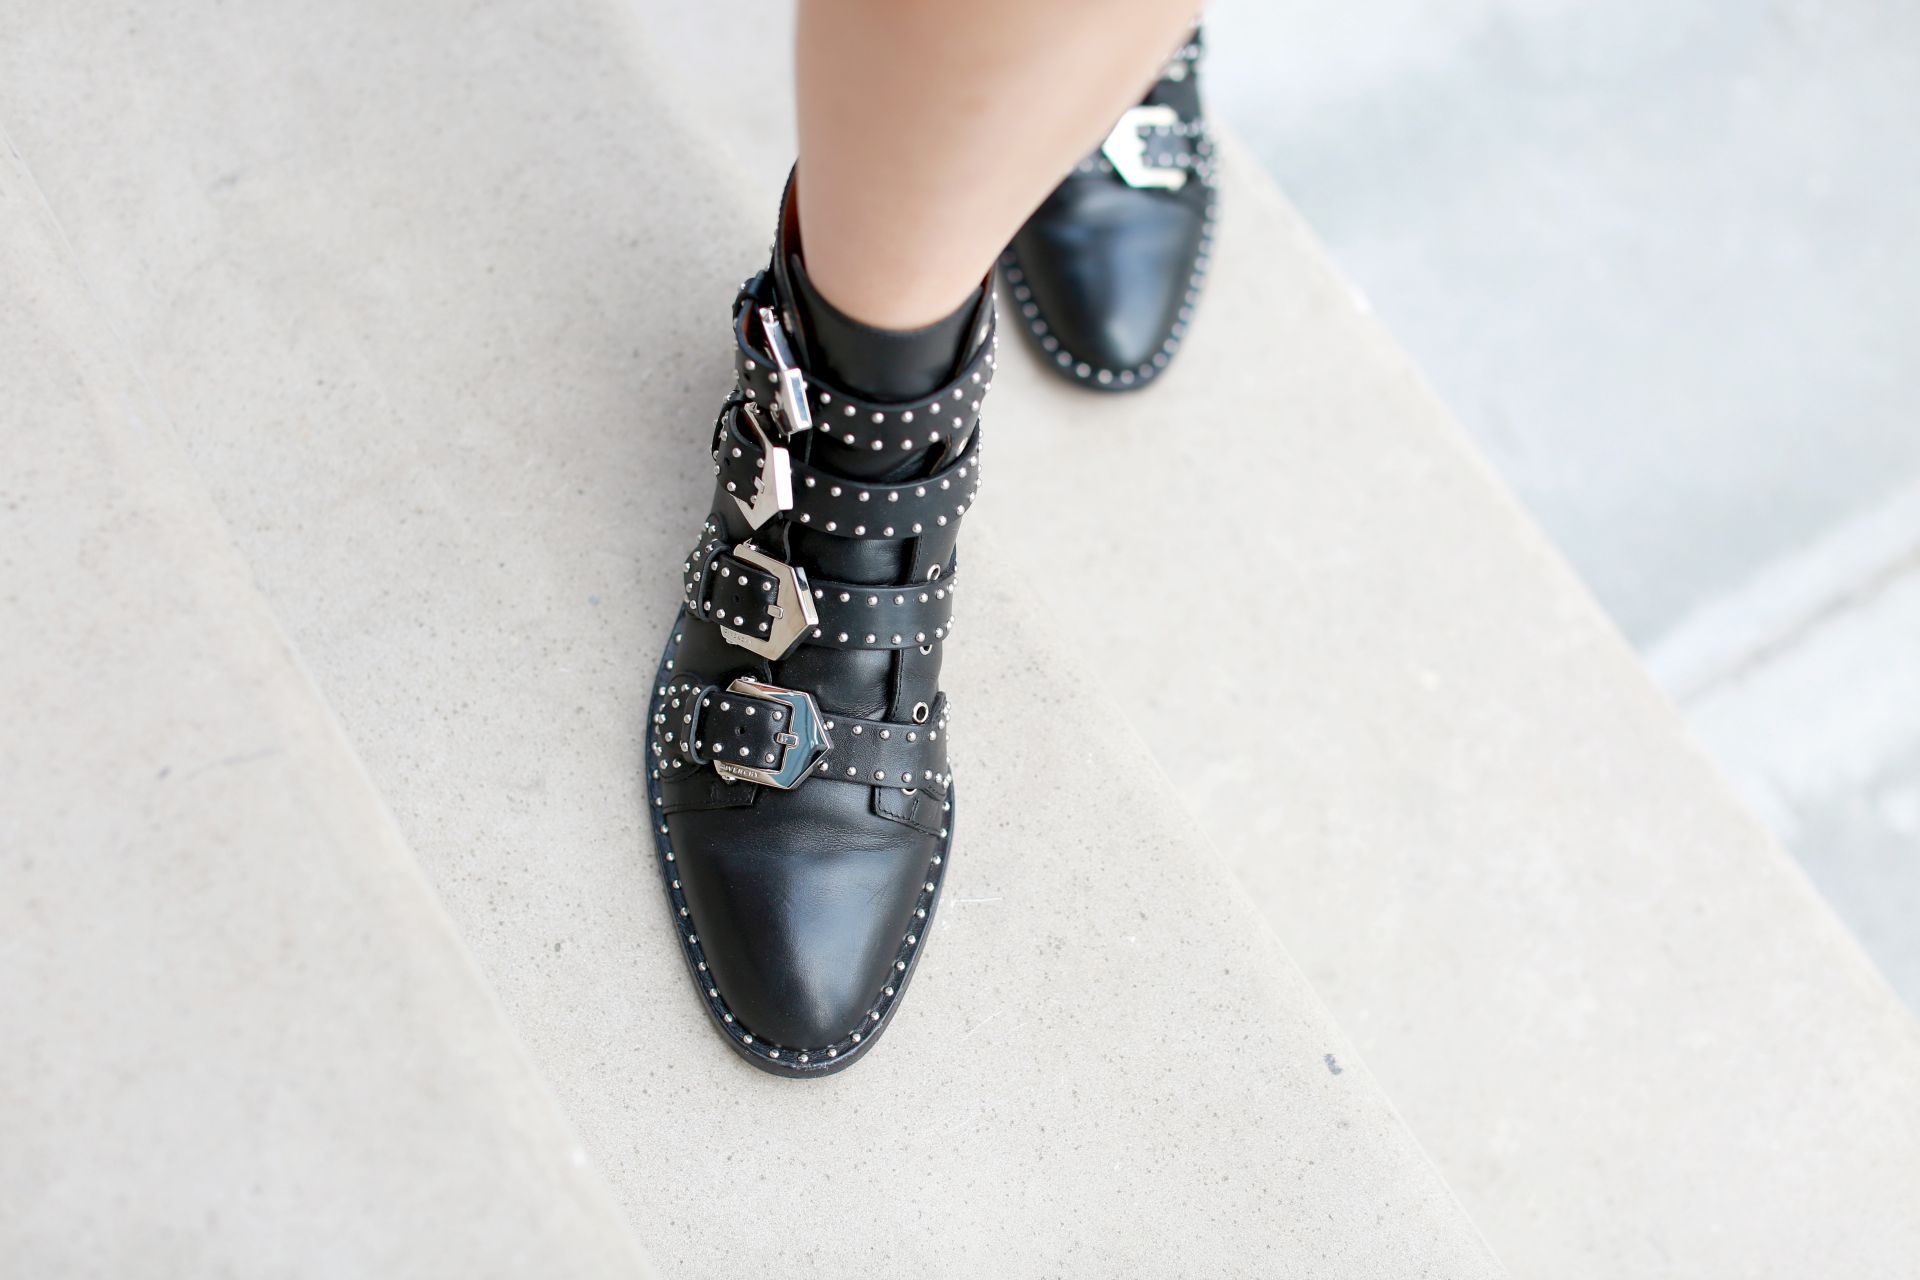 The Perfect Biker Boots Amelia Liana